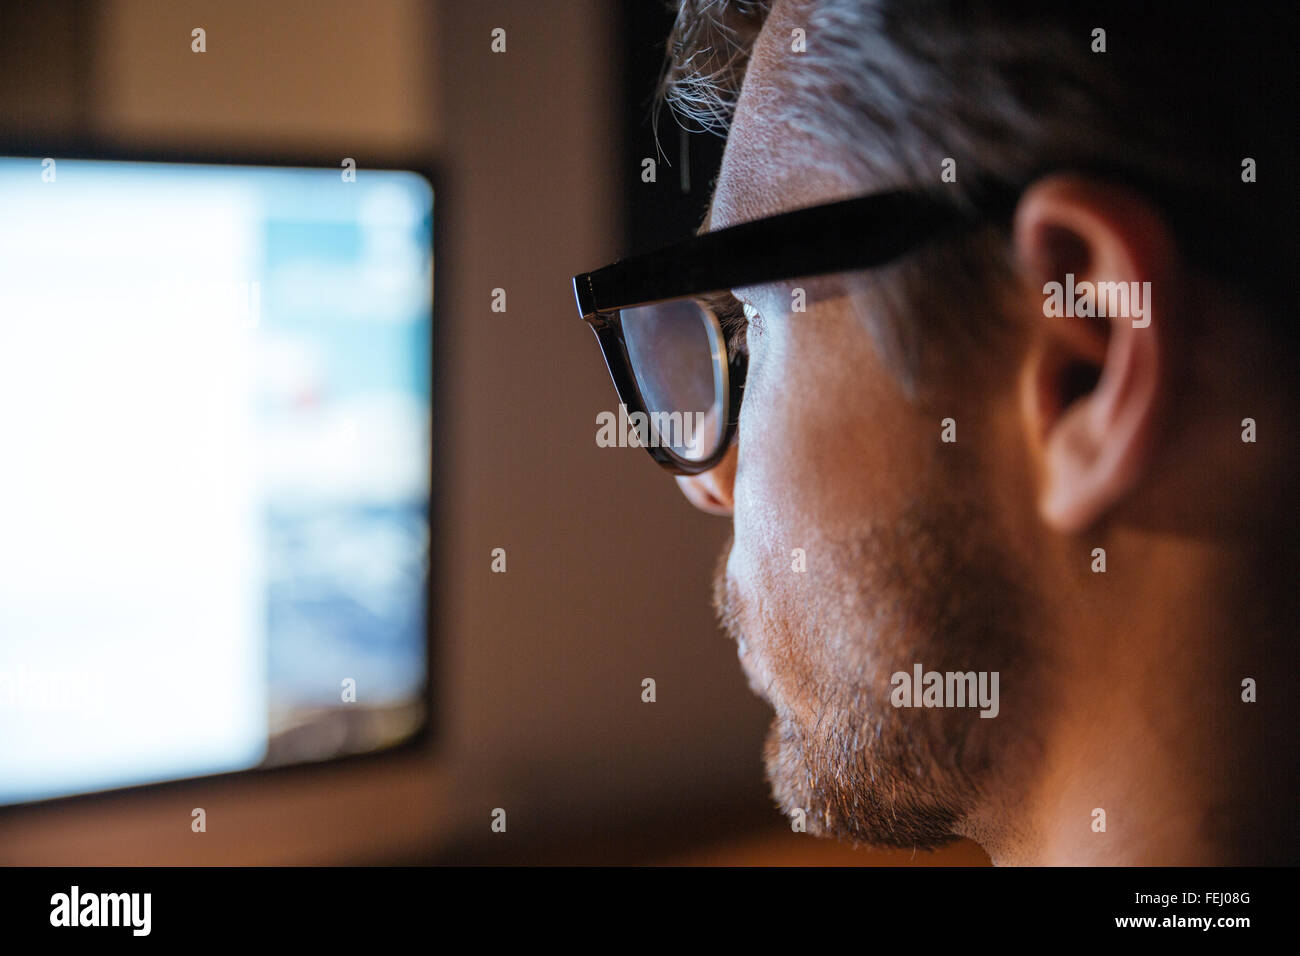 Serious stubbled young man in glasses using computer and looking at screen - Stock Image